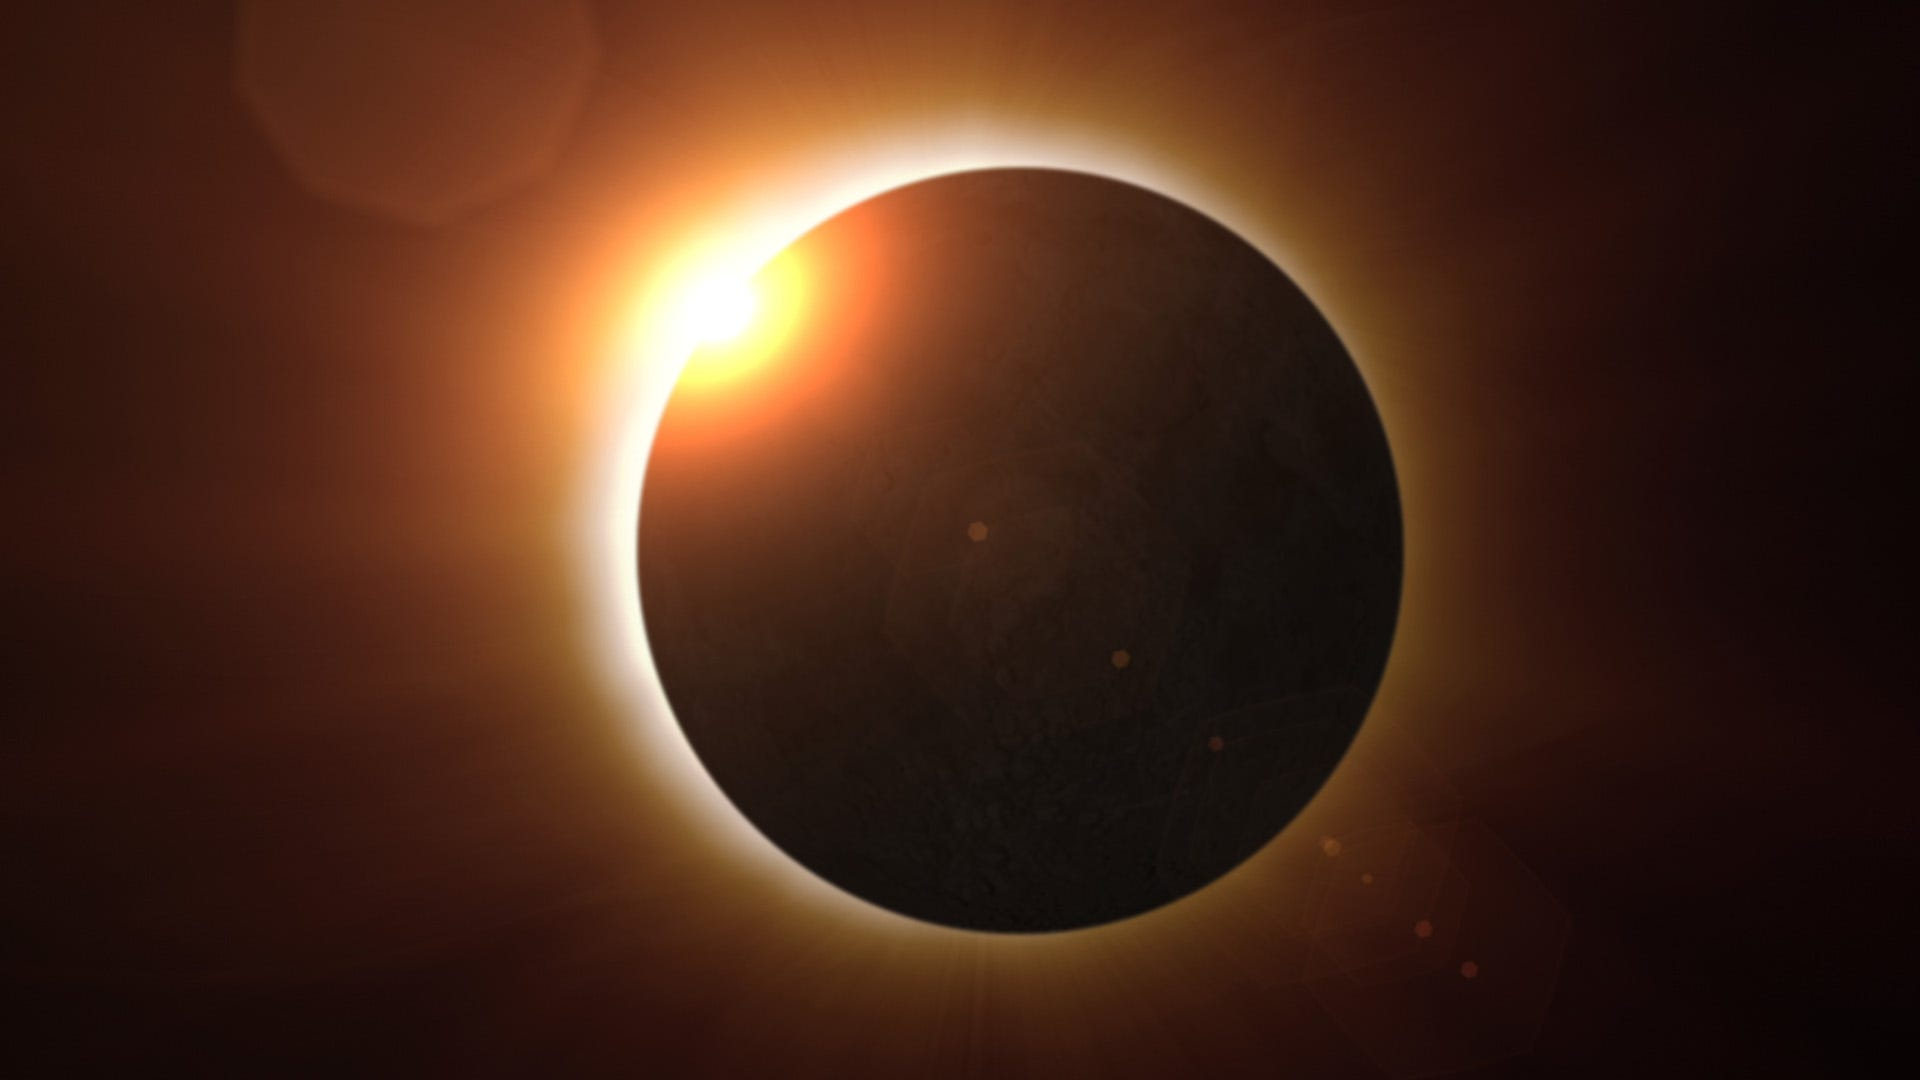 The 'Big One' is coming in 2017: A total solar eclipse ...